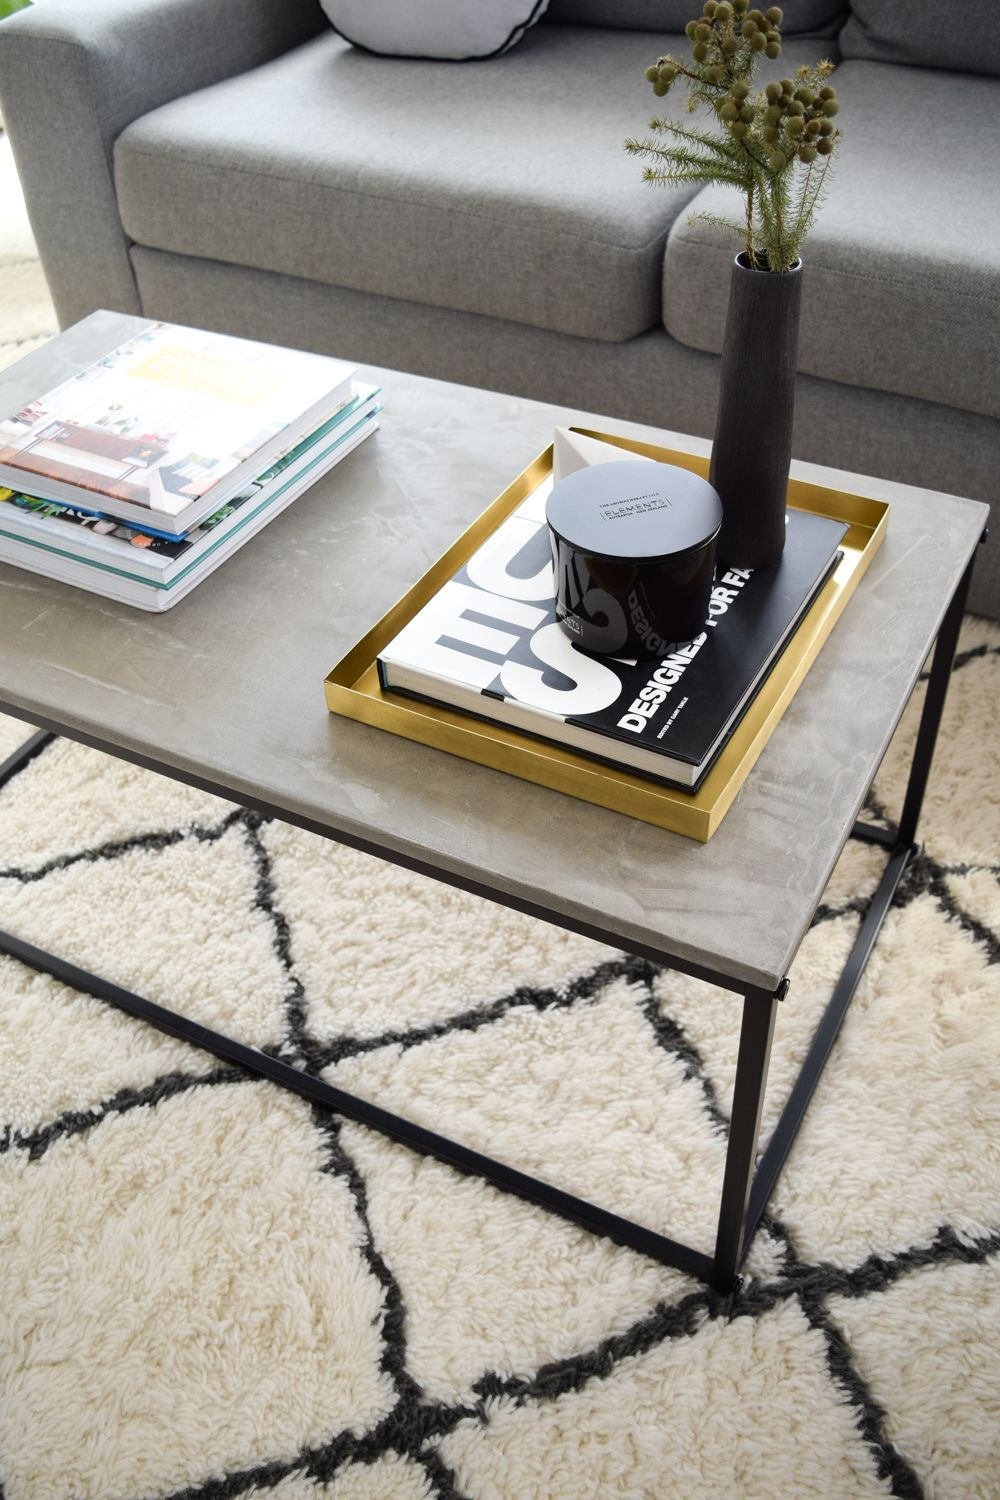 kmart hack coffee table veneer luxe concrete top furniture end tables industrial raw wood kitchen round seagrass small sitting room unfinished sofa black telephone vintage folding